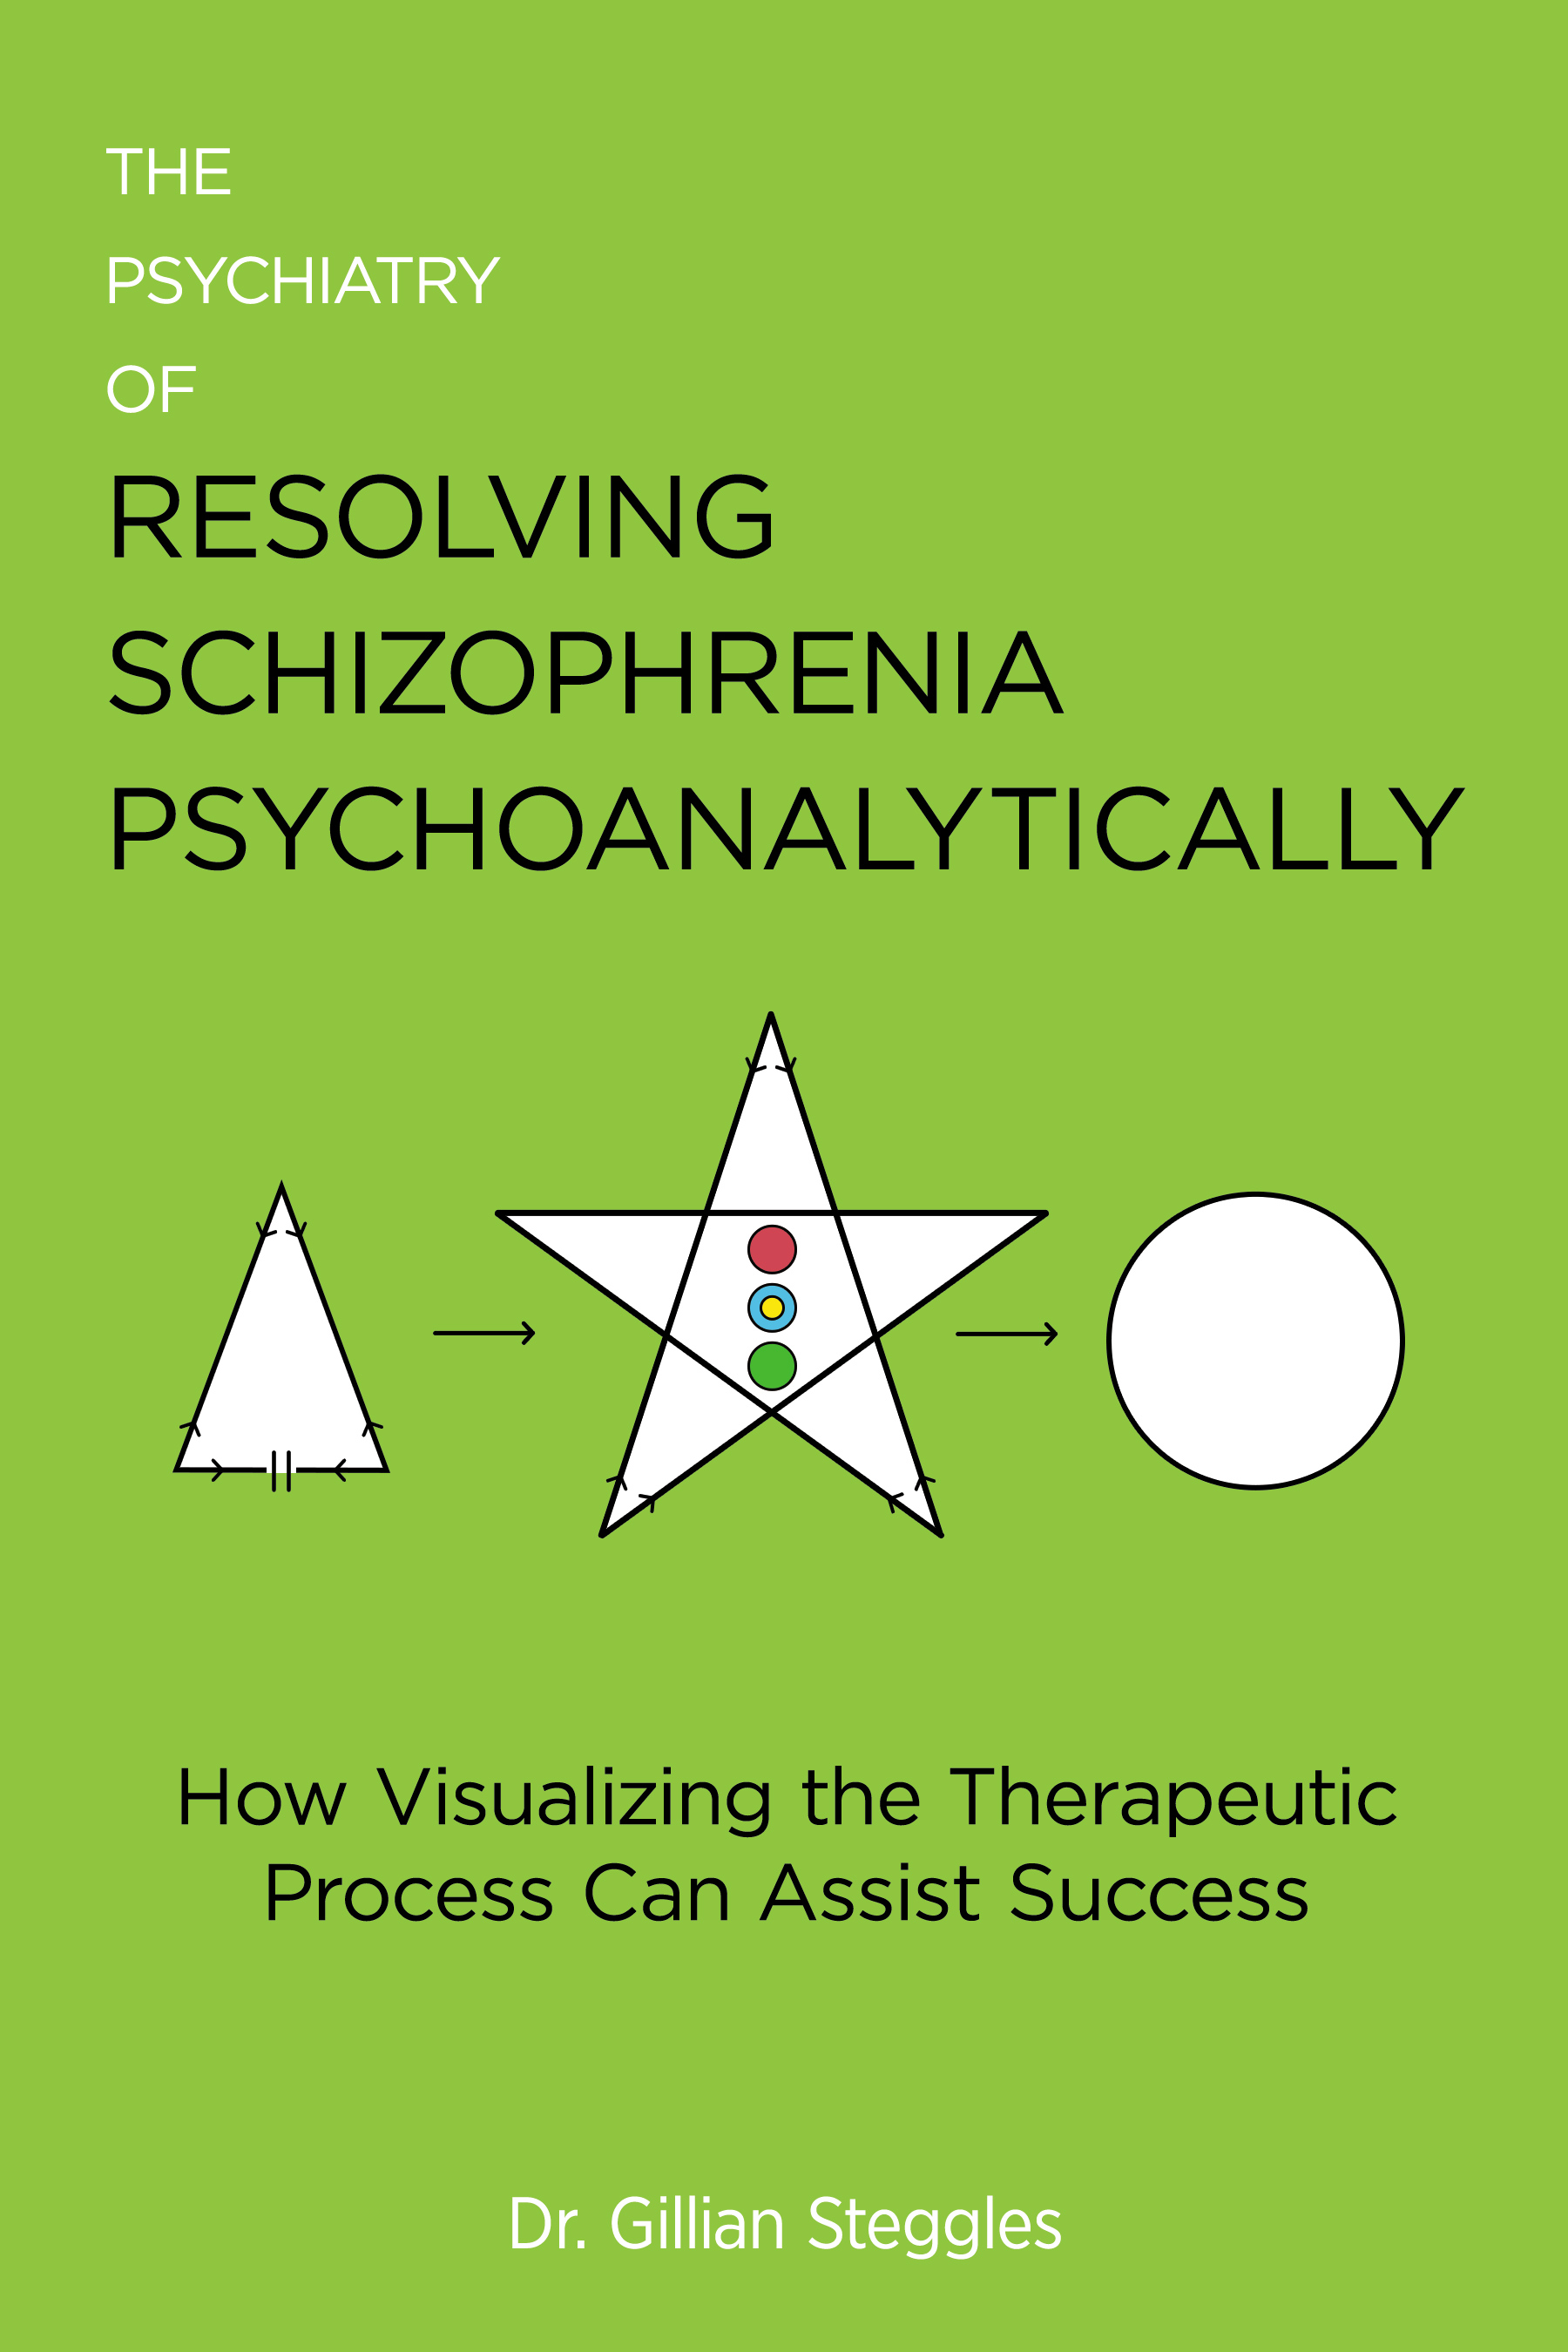 The Real Cost of Schizophrenia